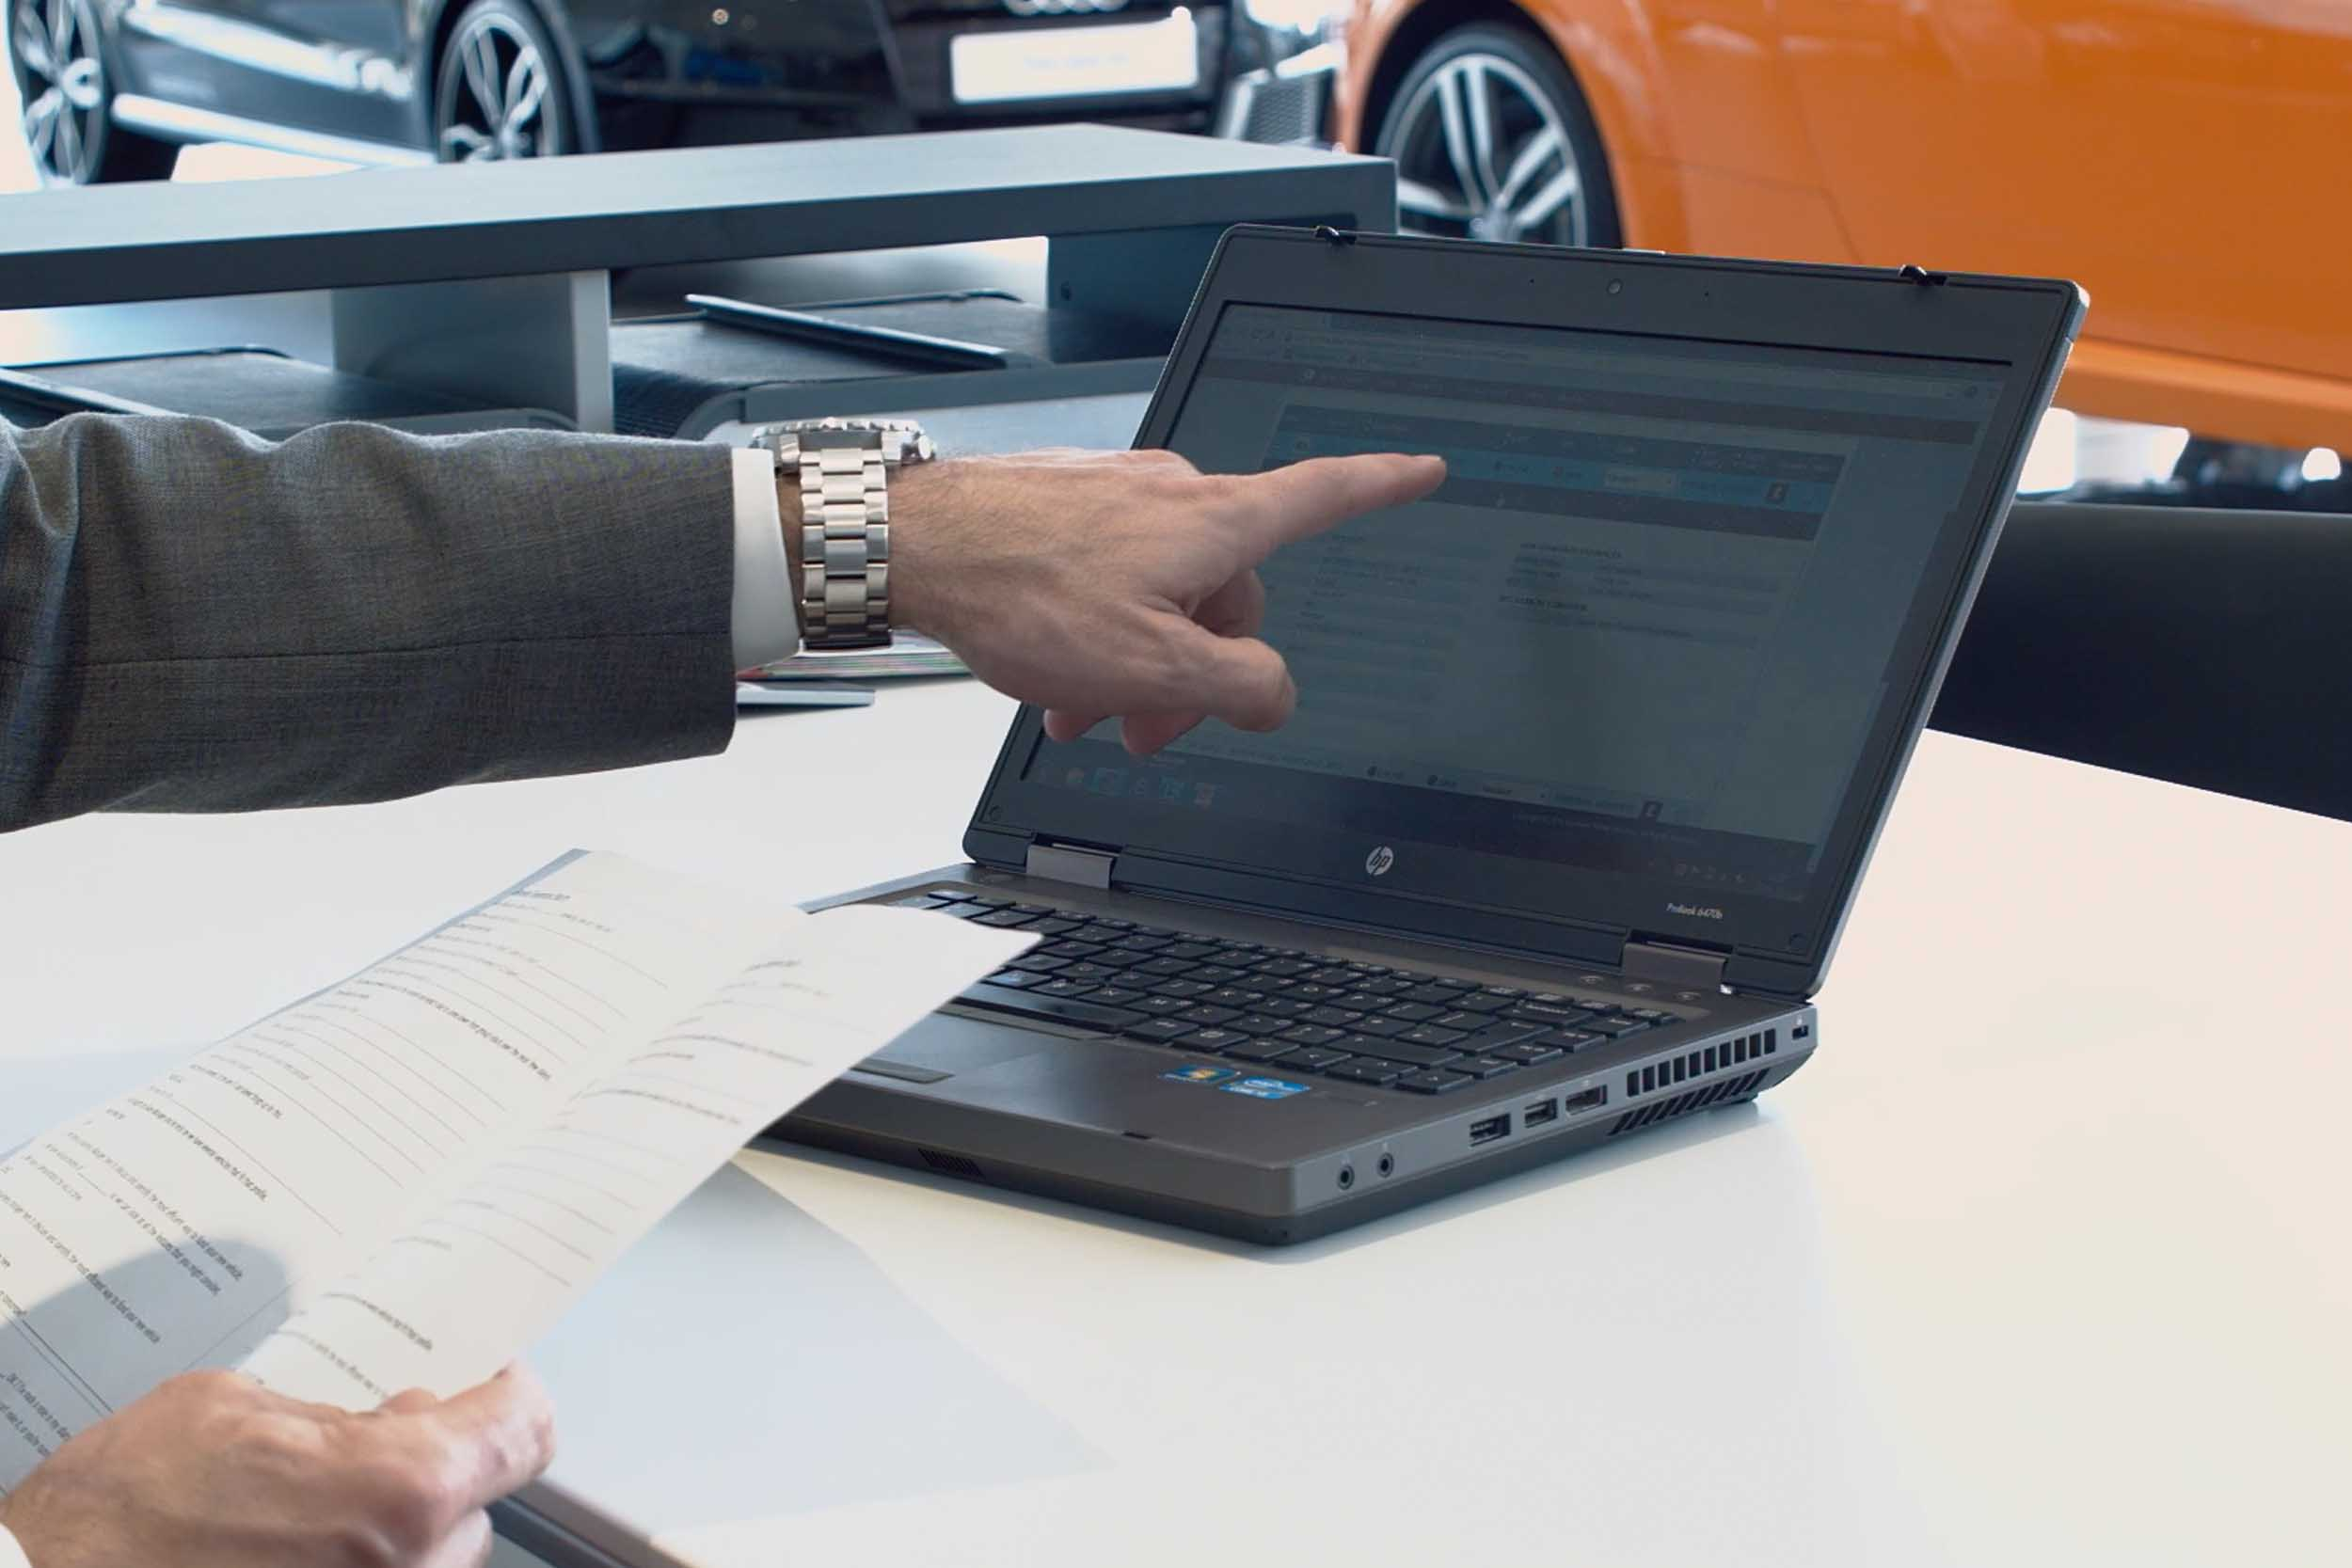 Manheim's Seller Advance vehicle valuation tools